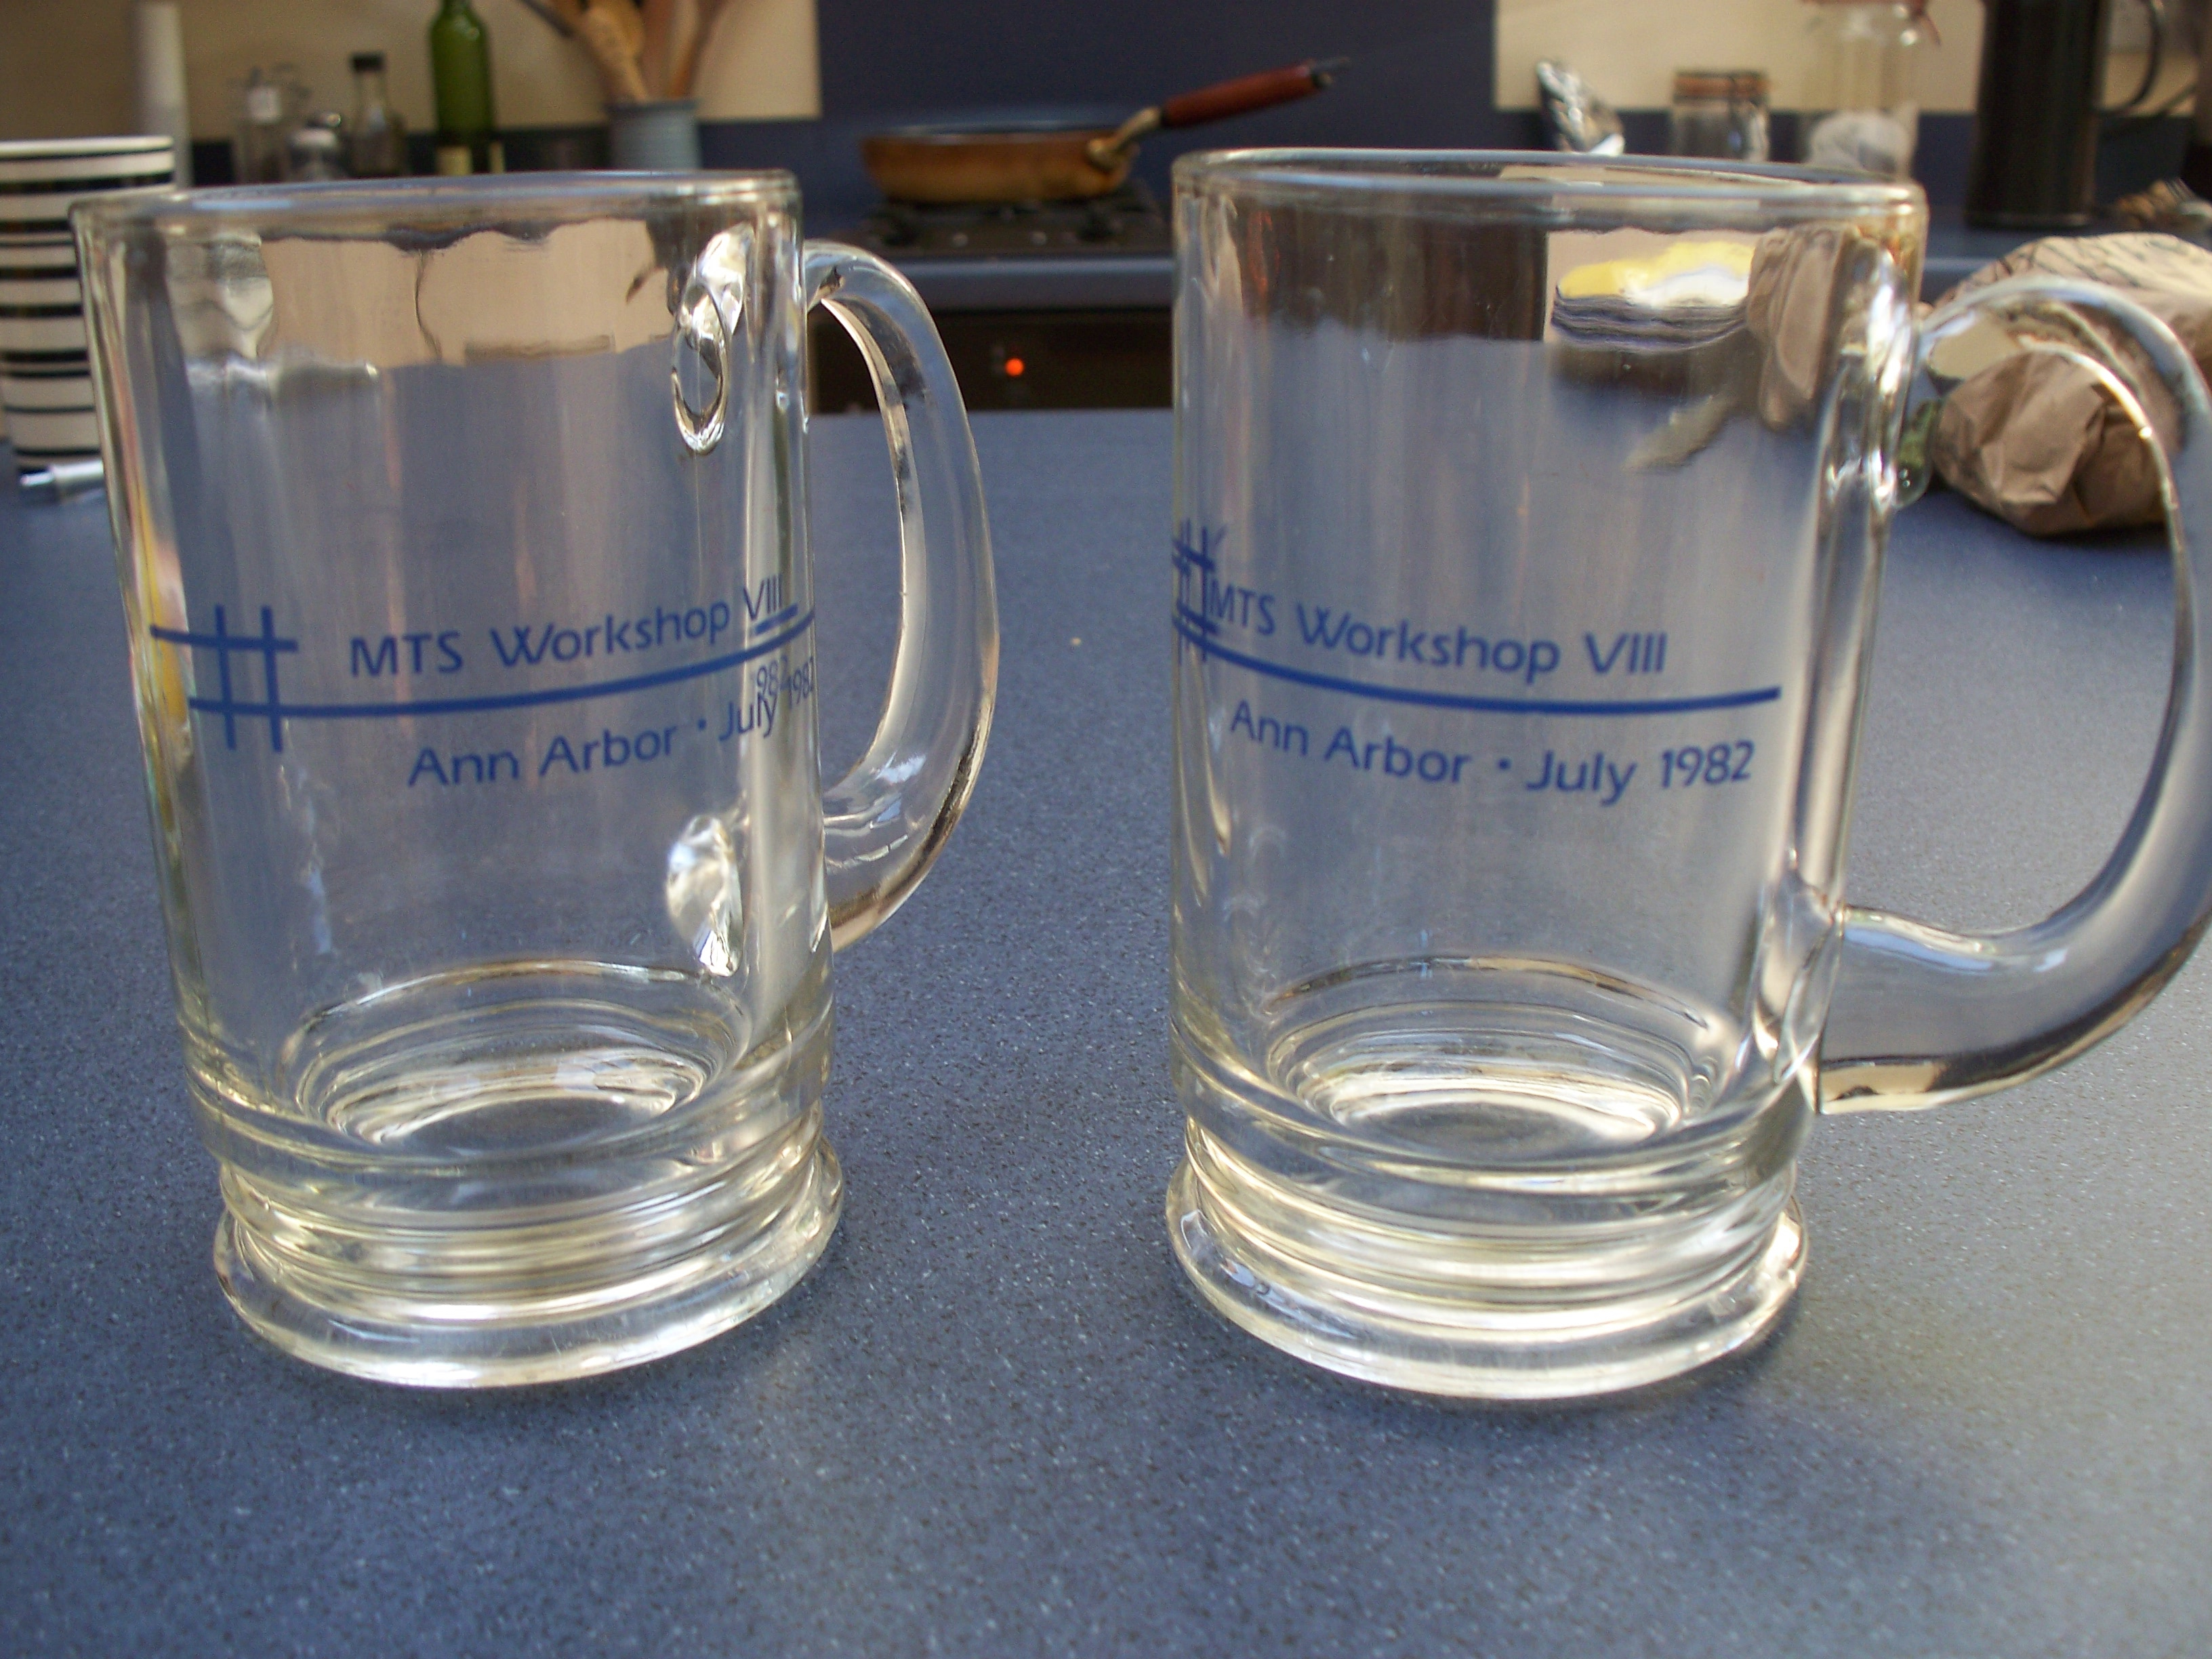 Photo: Mugs from MTS Workshop VIII, Ann Arbor, 1982 (from the collection of George R. Helffrich, Bristol, England, photograph by Shifrah Nenner, October 2010)